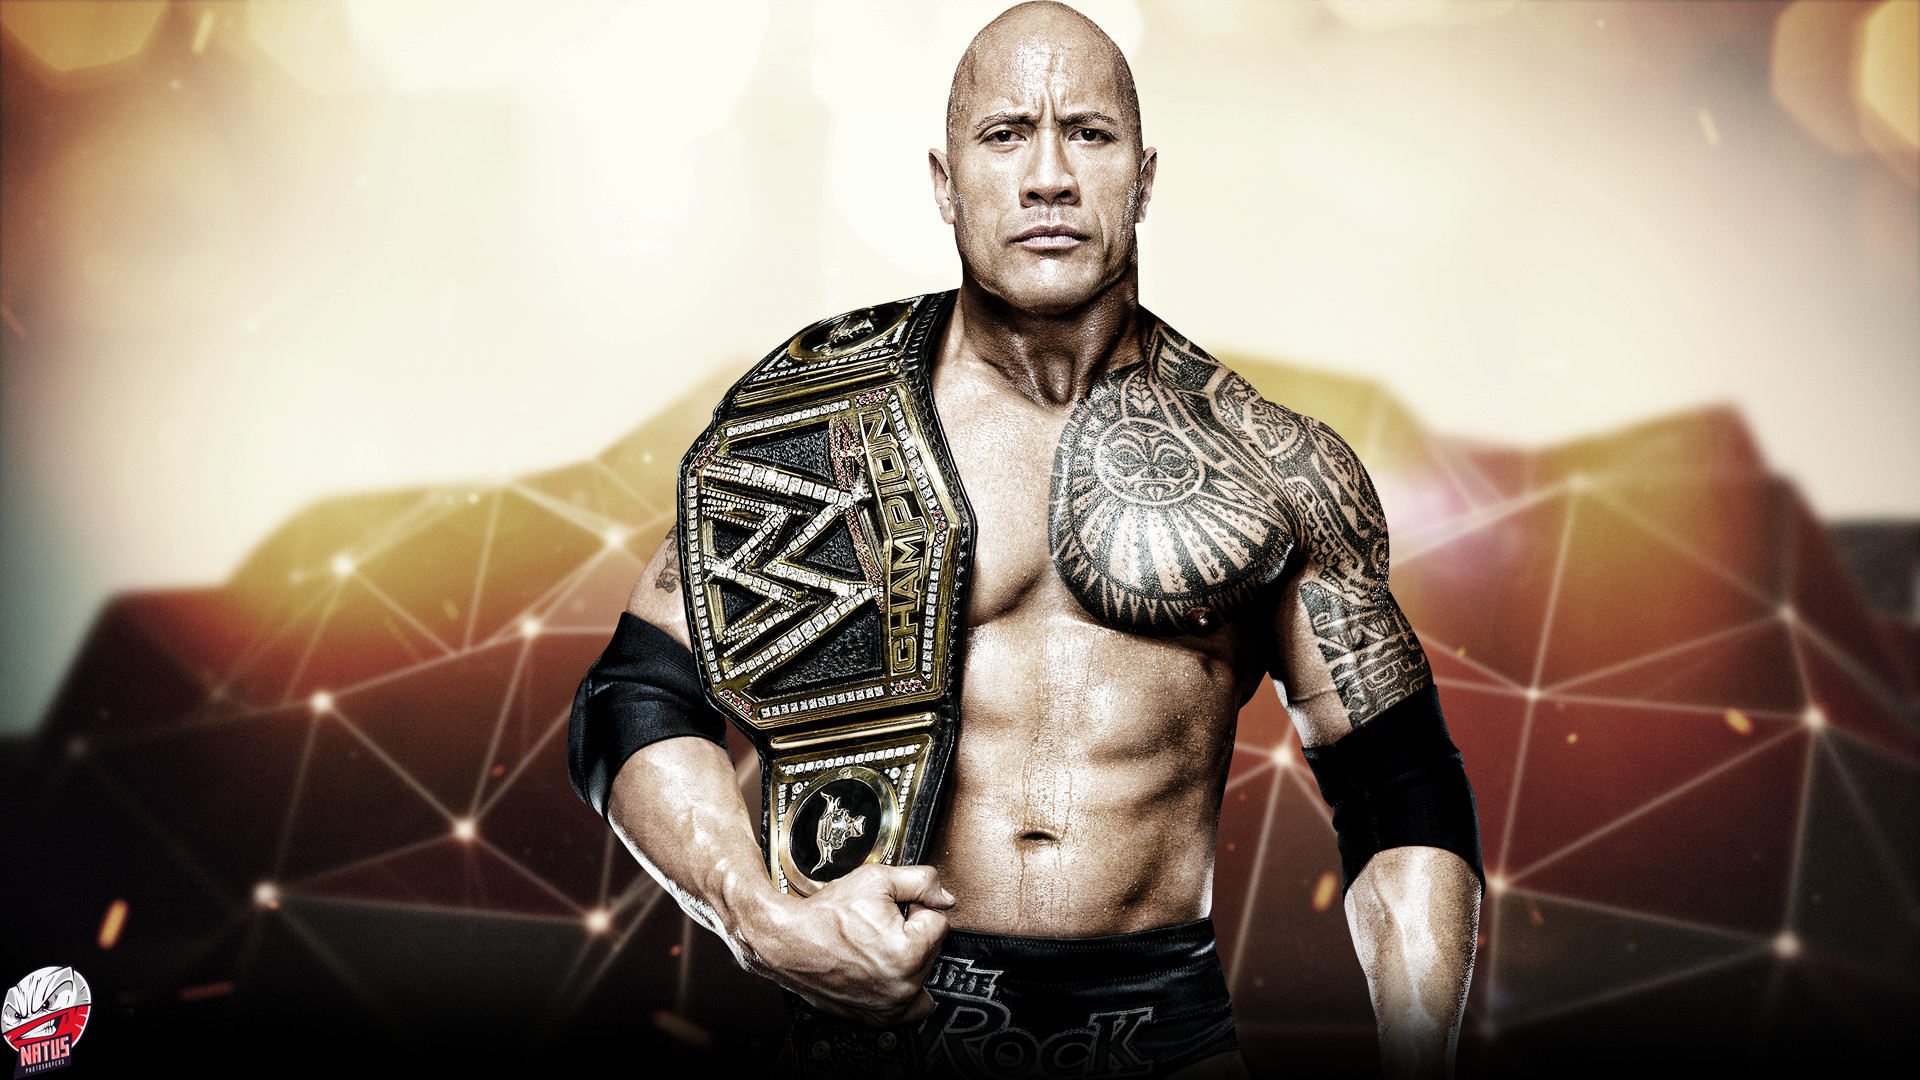 2880x1800 The Rock Wwe Super Star Free Hd Wallpaper